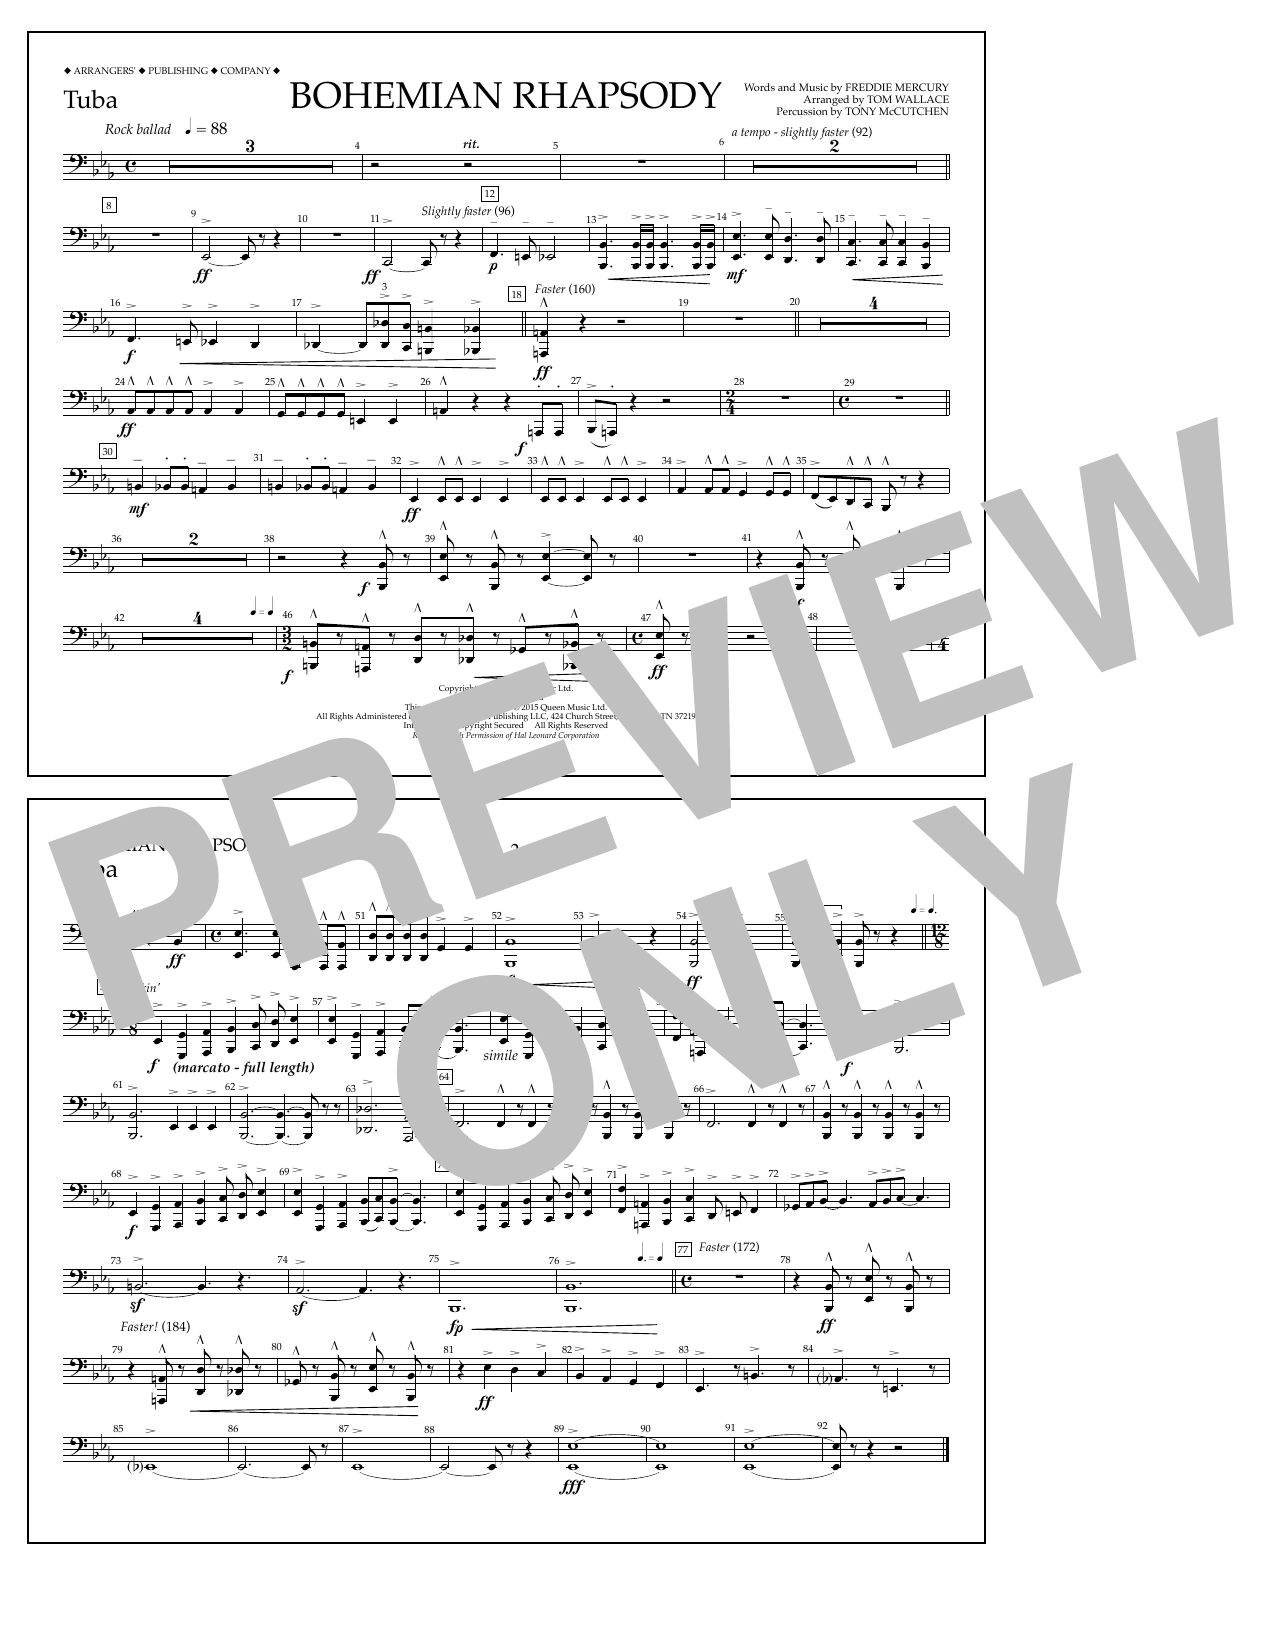 Bohemian Rhapsody - Tuba Sheet Music